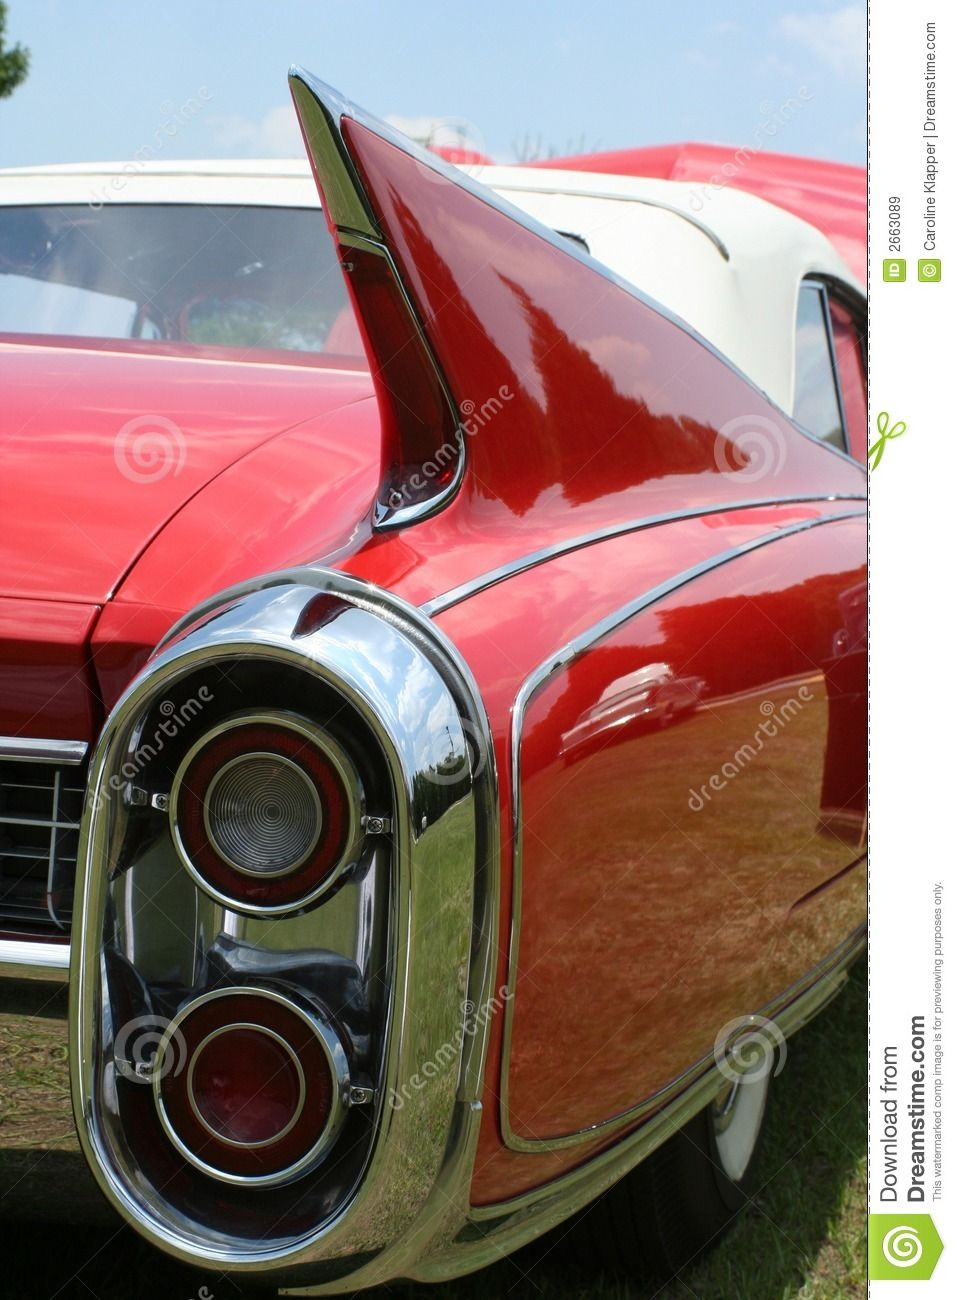 Photos Of Vintage Car Tail Lights Google Search GRILLES TAIL - Classic car search